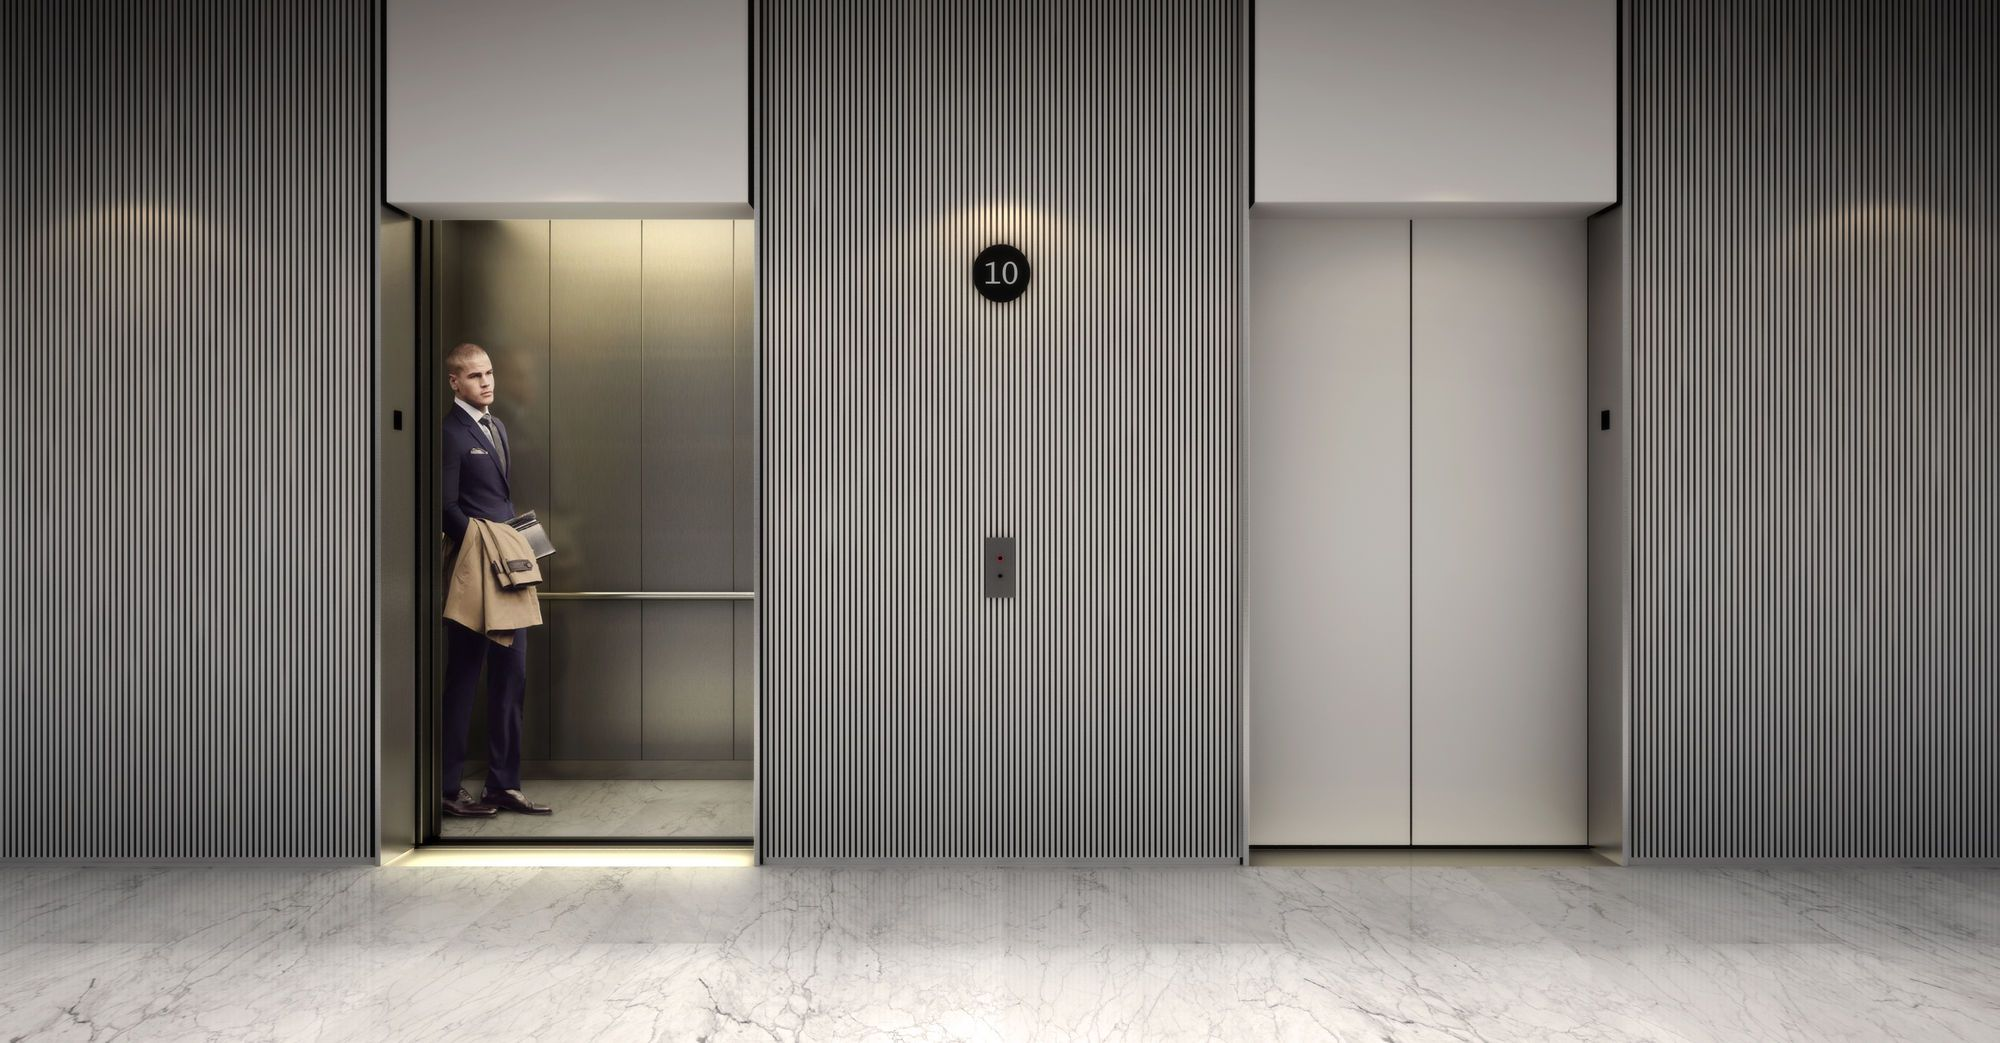 Lift lobby design google search aufzugsportal pinterest aufzug bodenbelag und architektur - Innenarchitektur flur ...